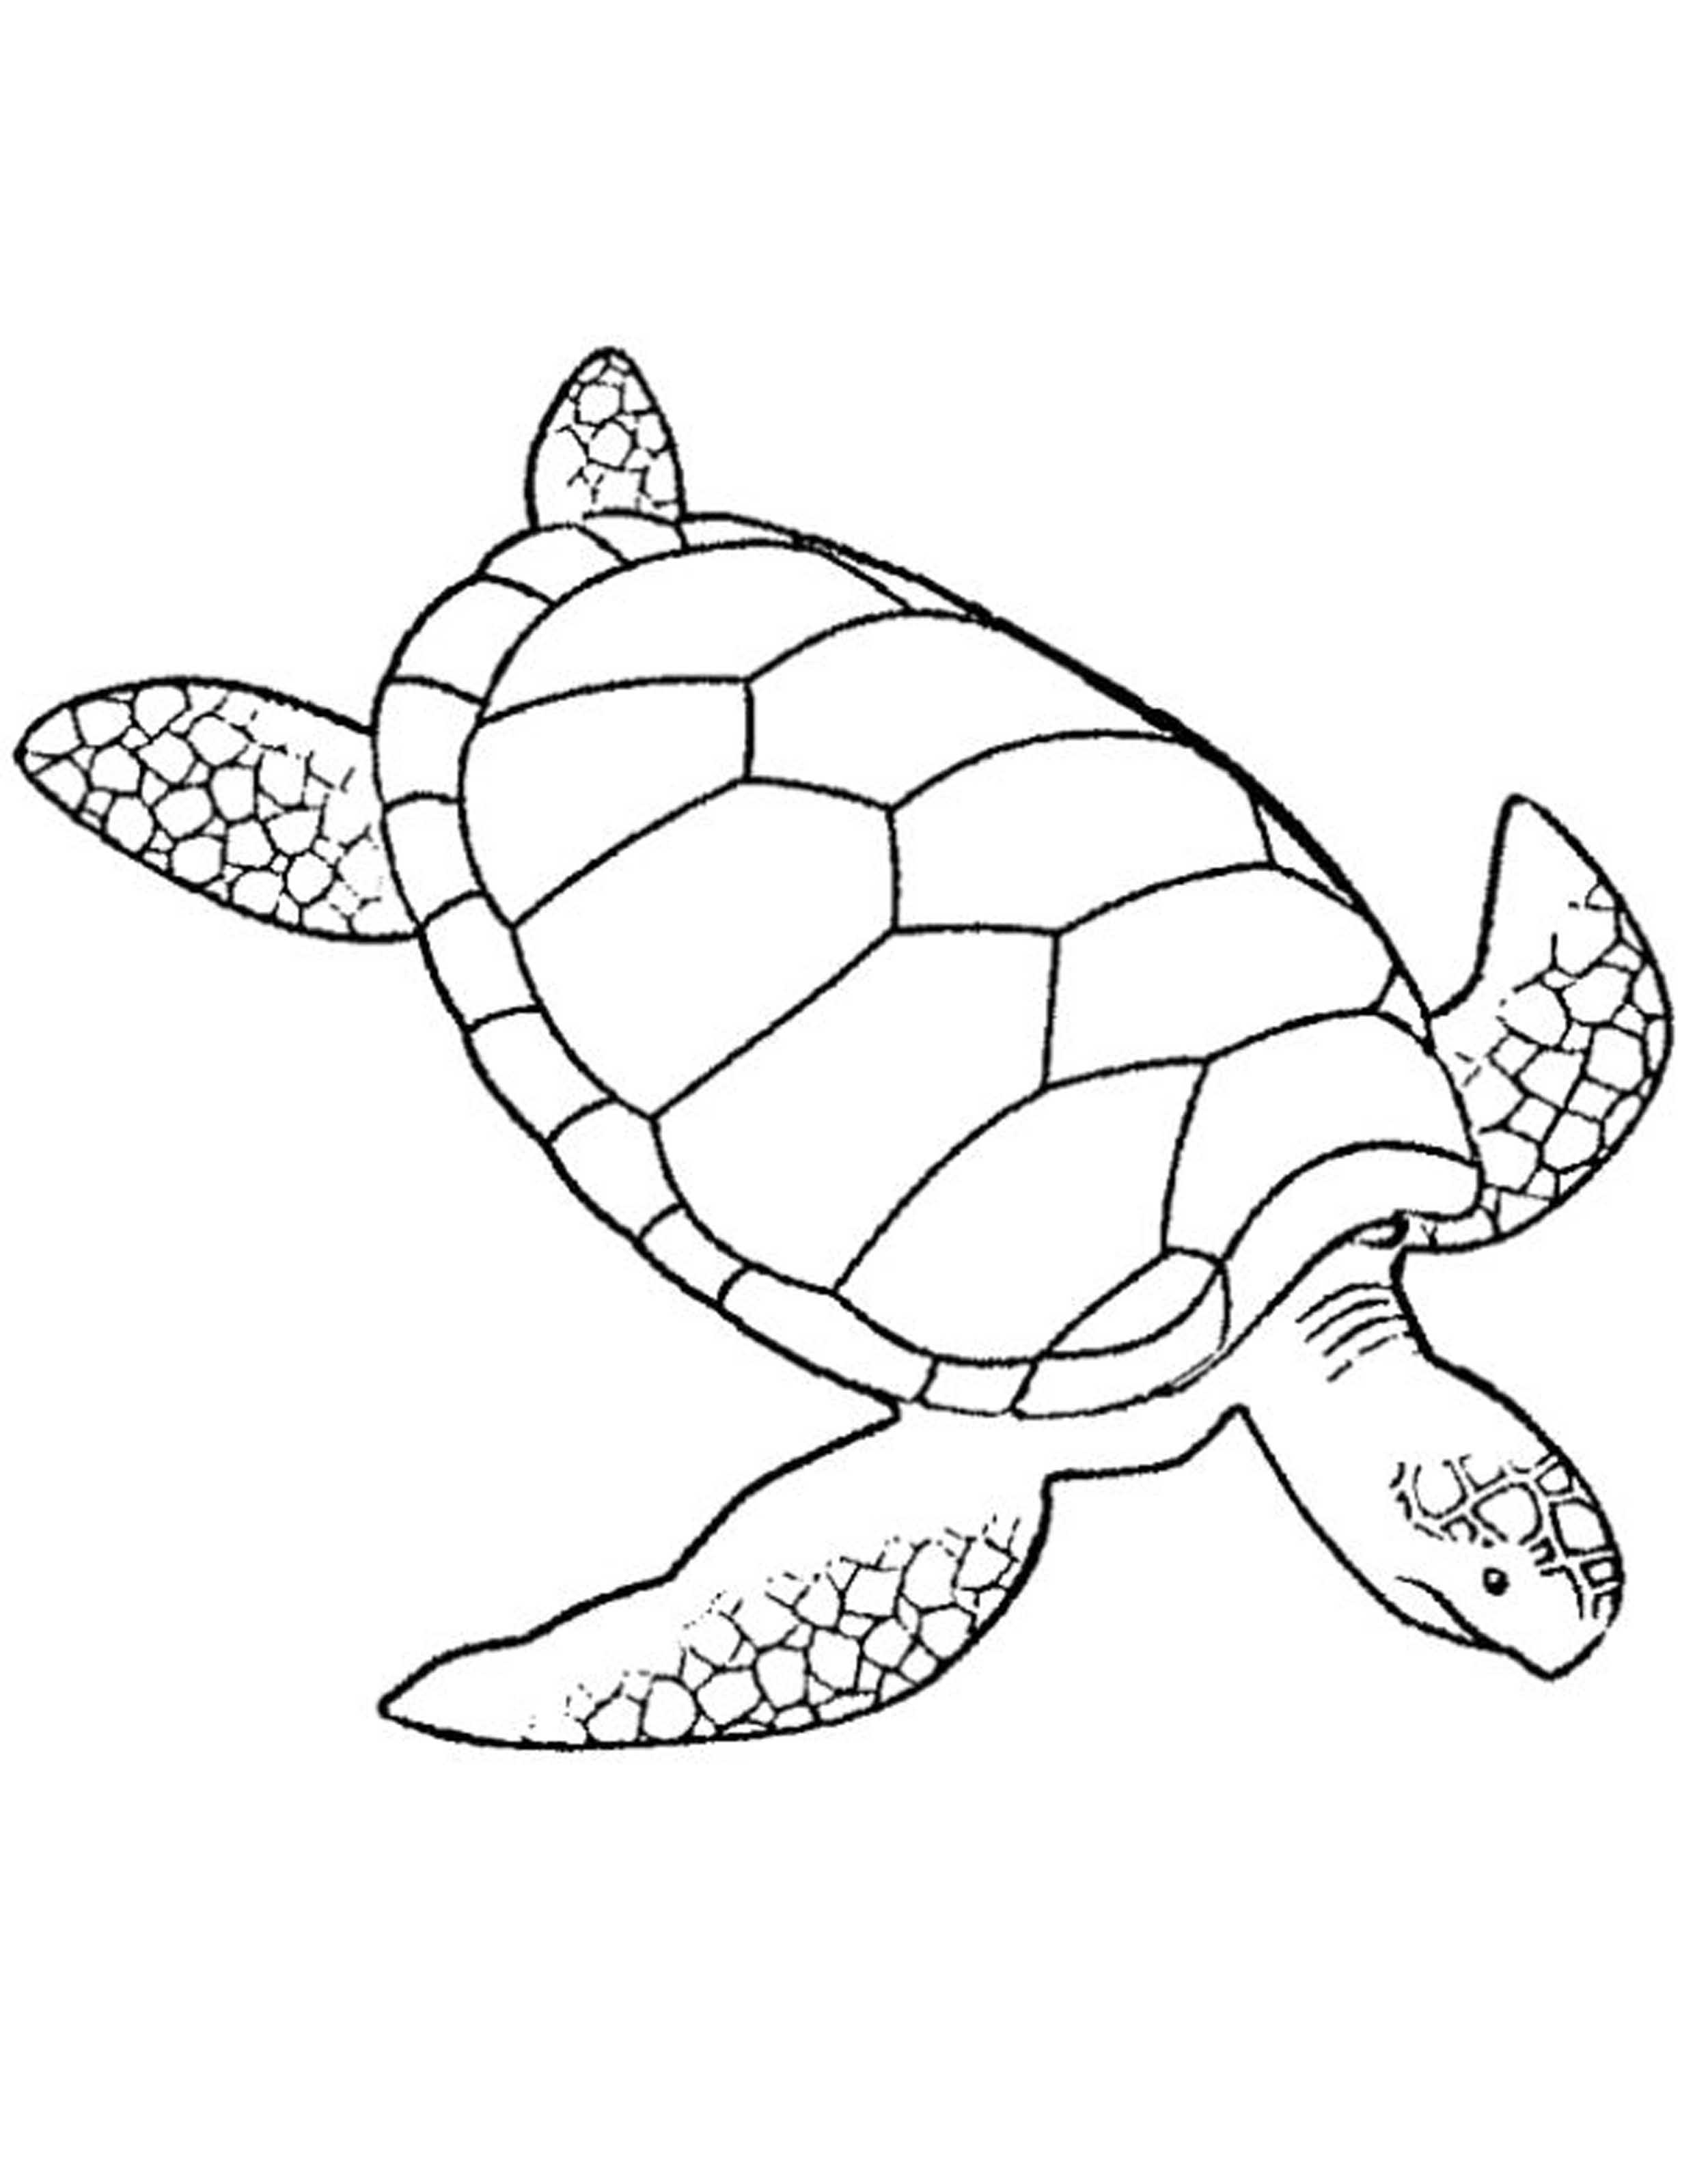 tortoise coloring page turtle coloring pages free download on clipartmag coloring tortoise page